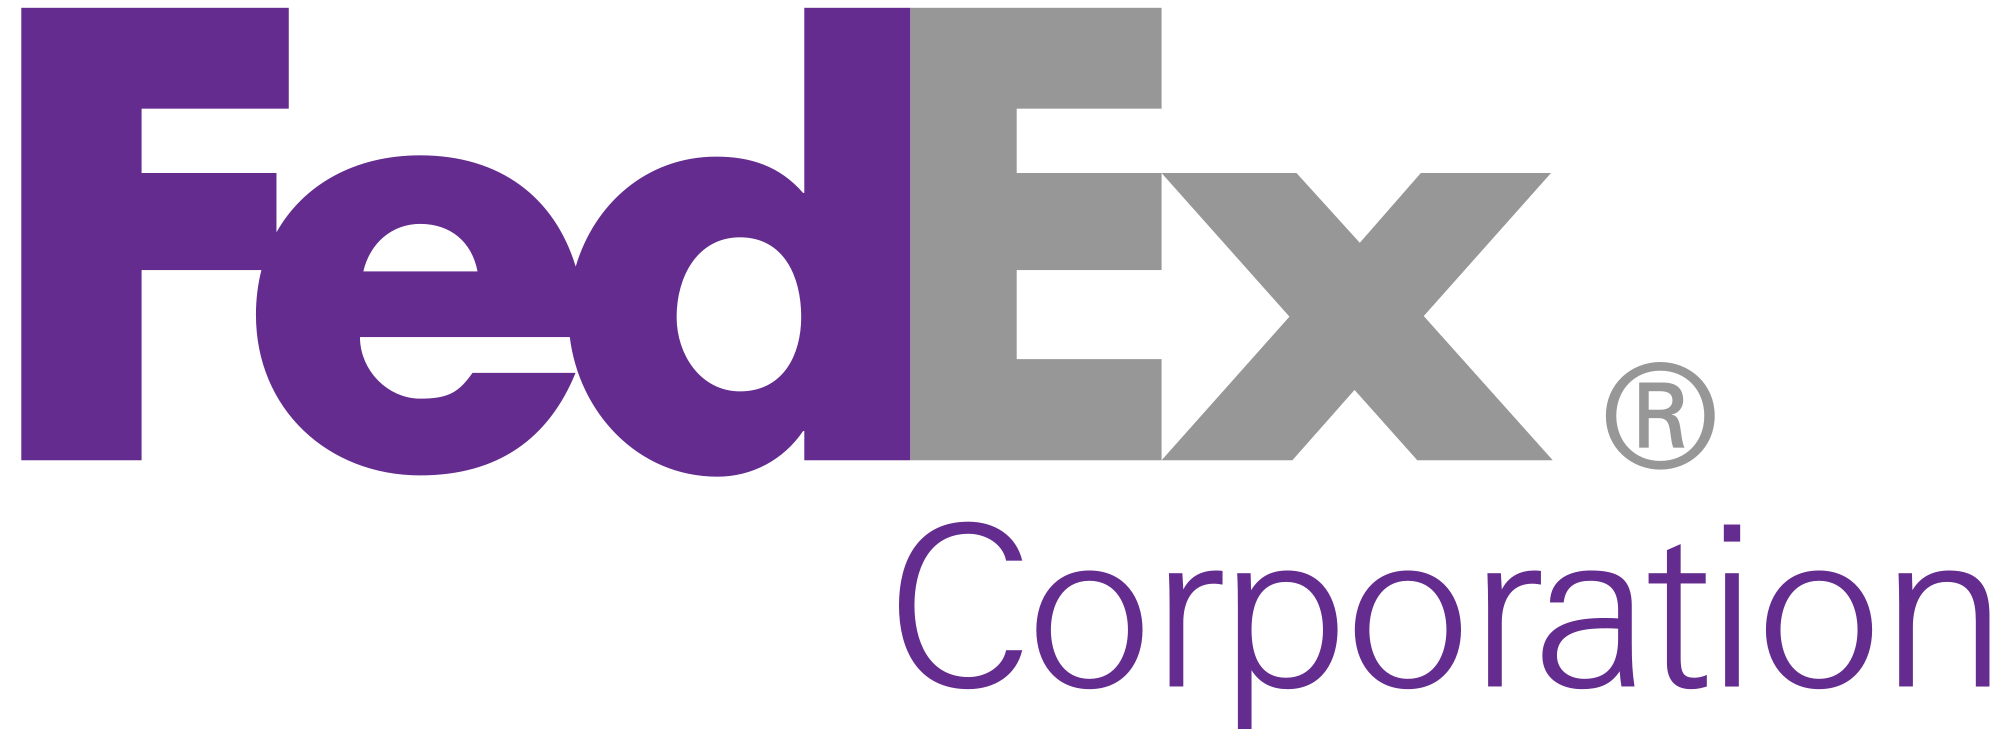 Fedex shipping at Exact Fulfillment in North Branch, MN